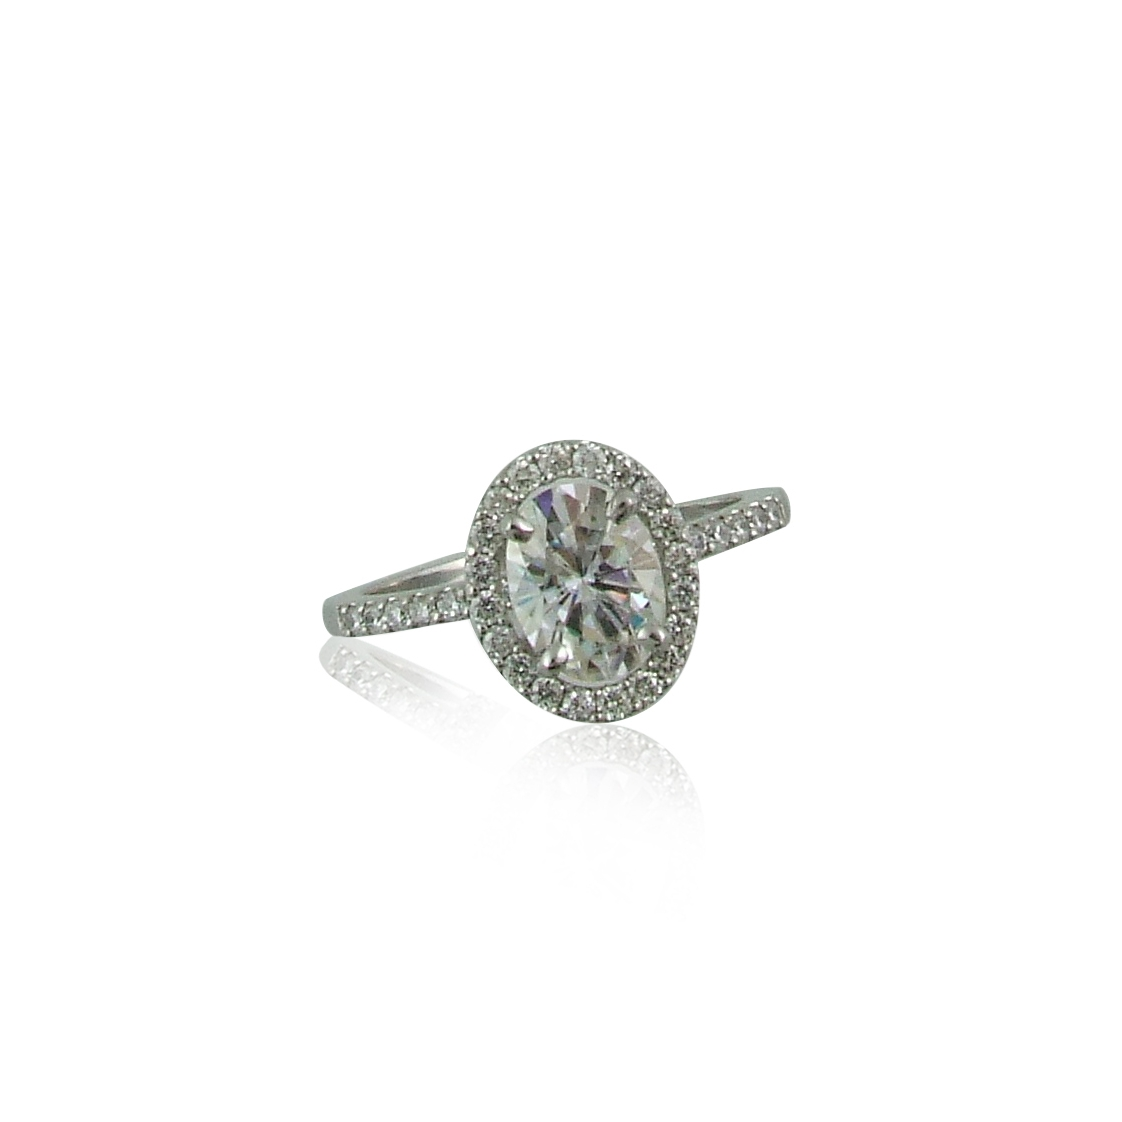 Forever One 8x6mm Oval Moissanite with VS, F Round Diamonds set in Platinum